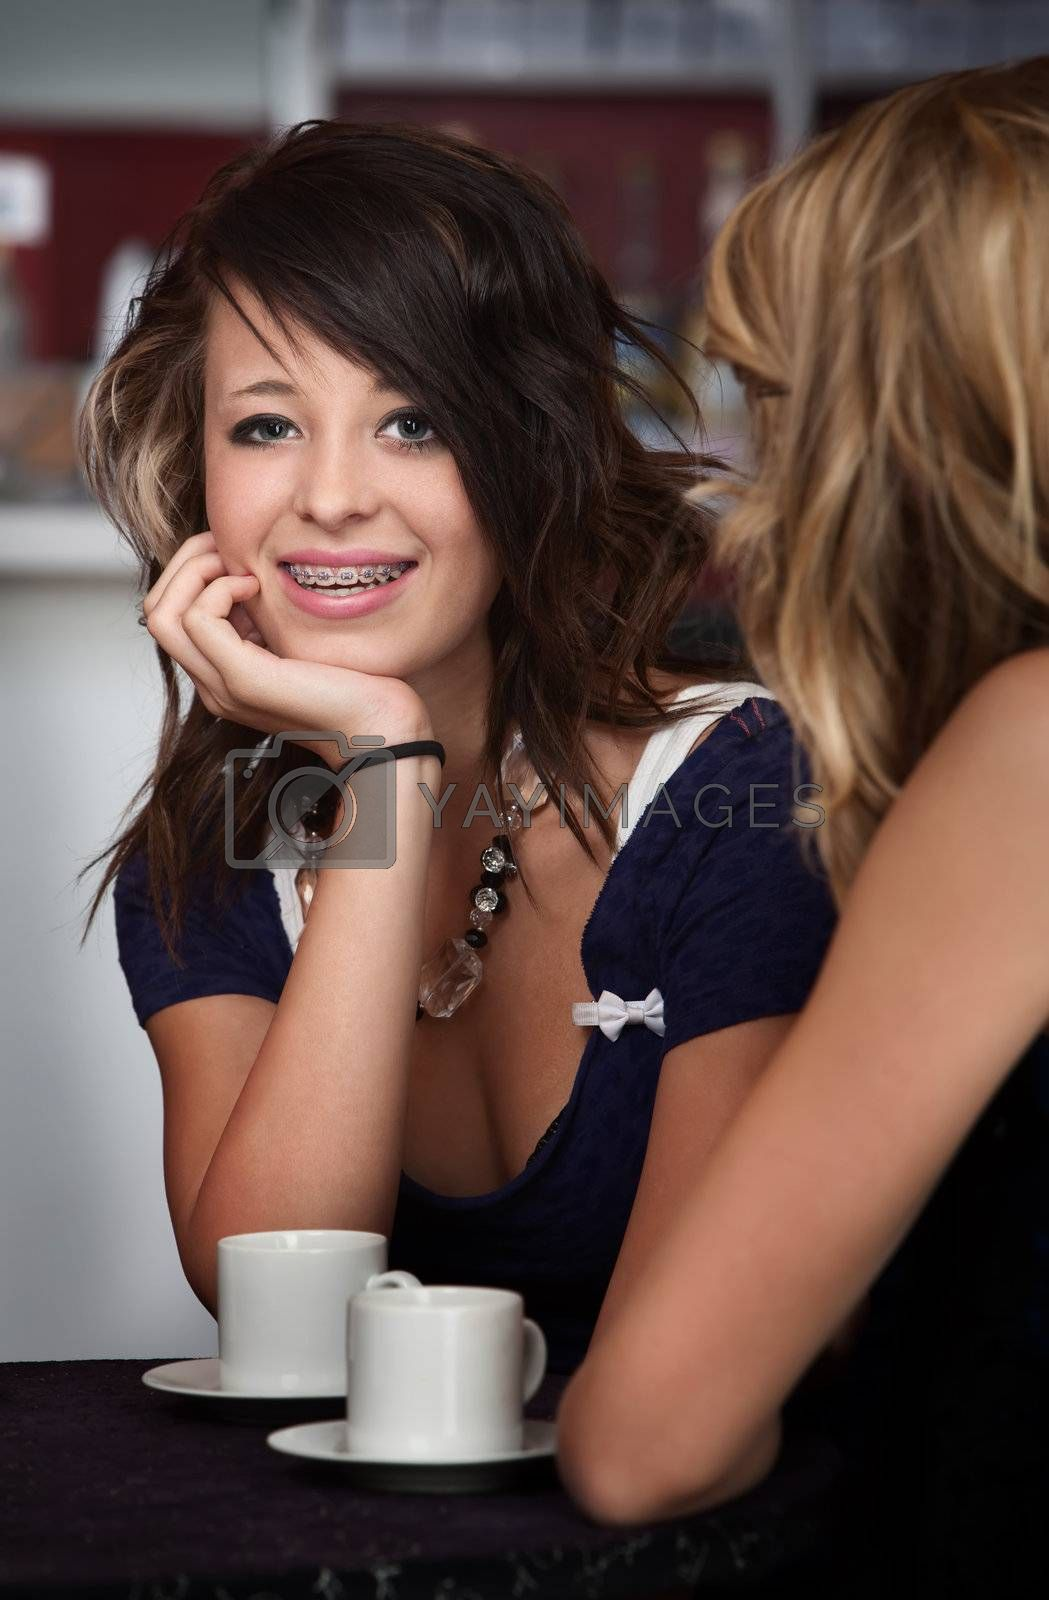 A cute teenaged girl with braces sitting at a table with a friend.